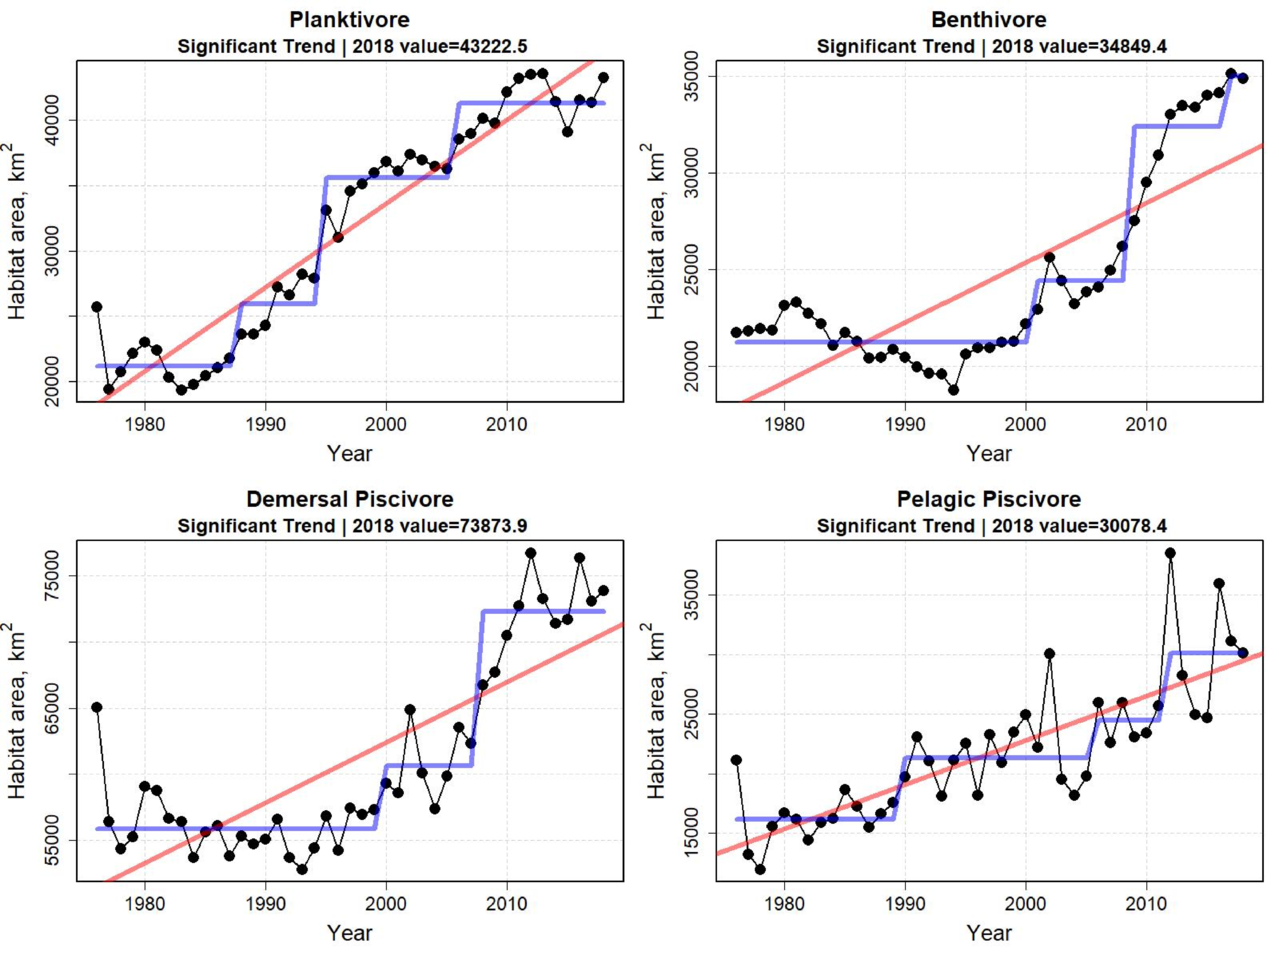 Time series plots showing the total habitat area for different species groups. Top Row:  Planktivores and Benthivores.  Bottom Row:  Demersal Piscivores and Pelagic Piscivores.